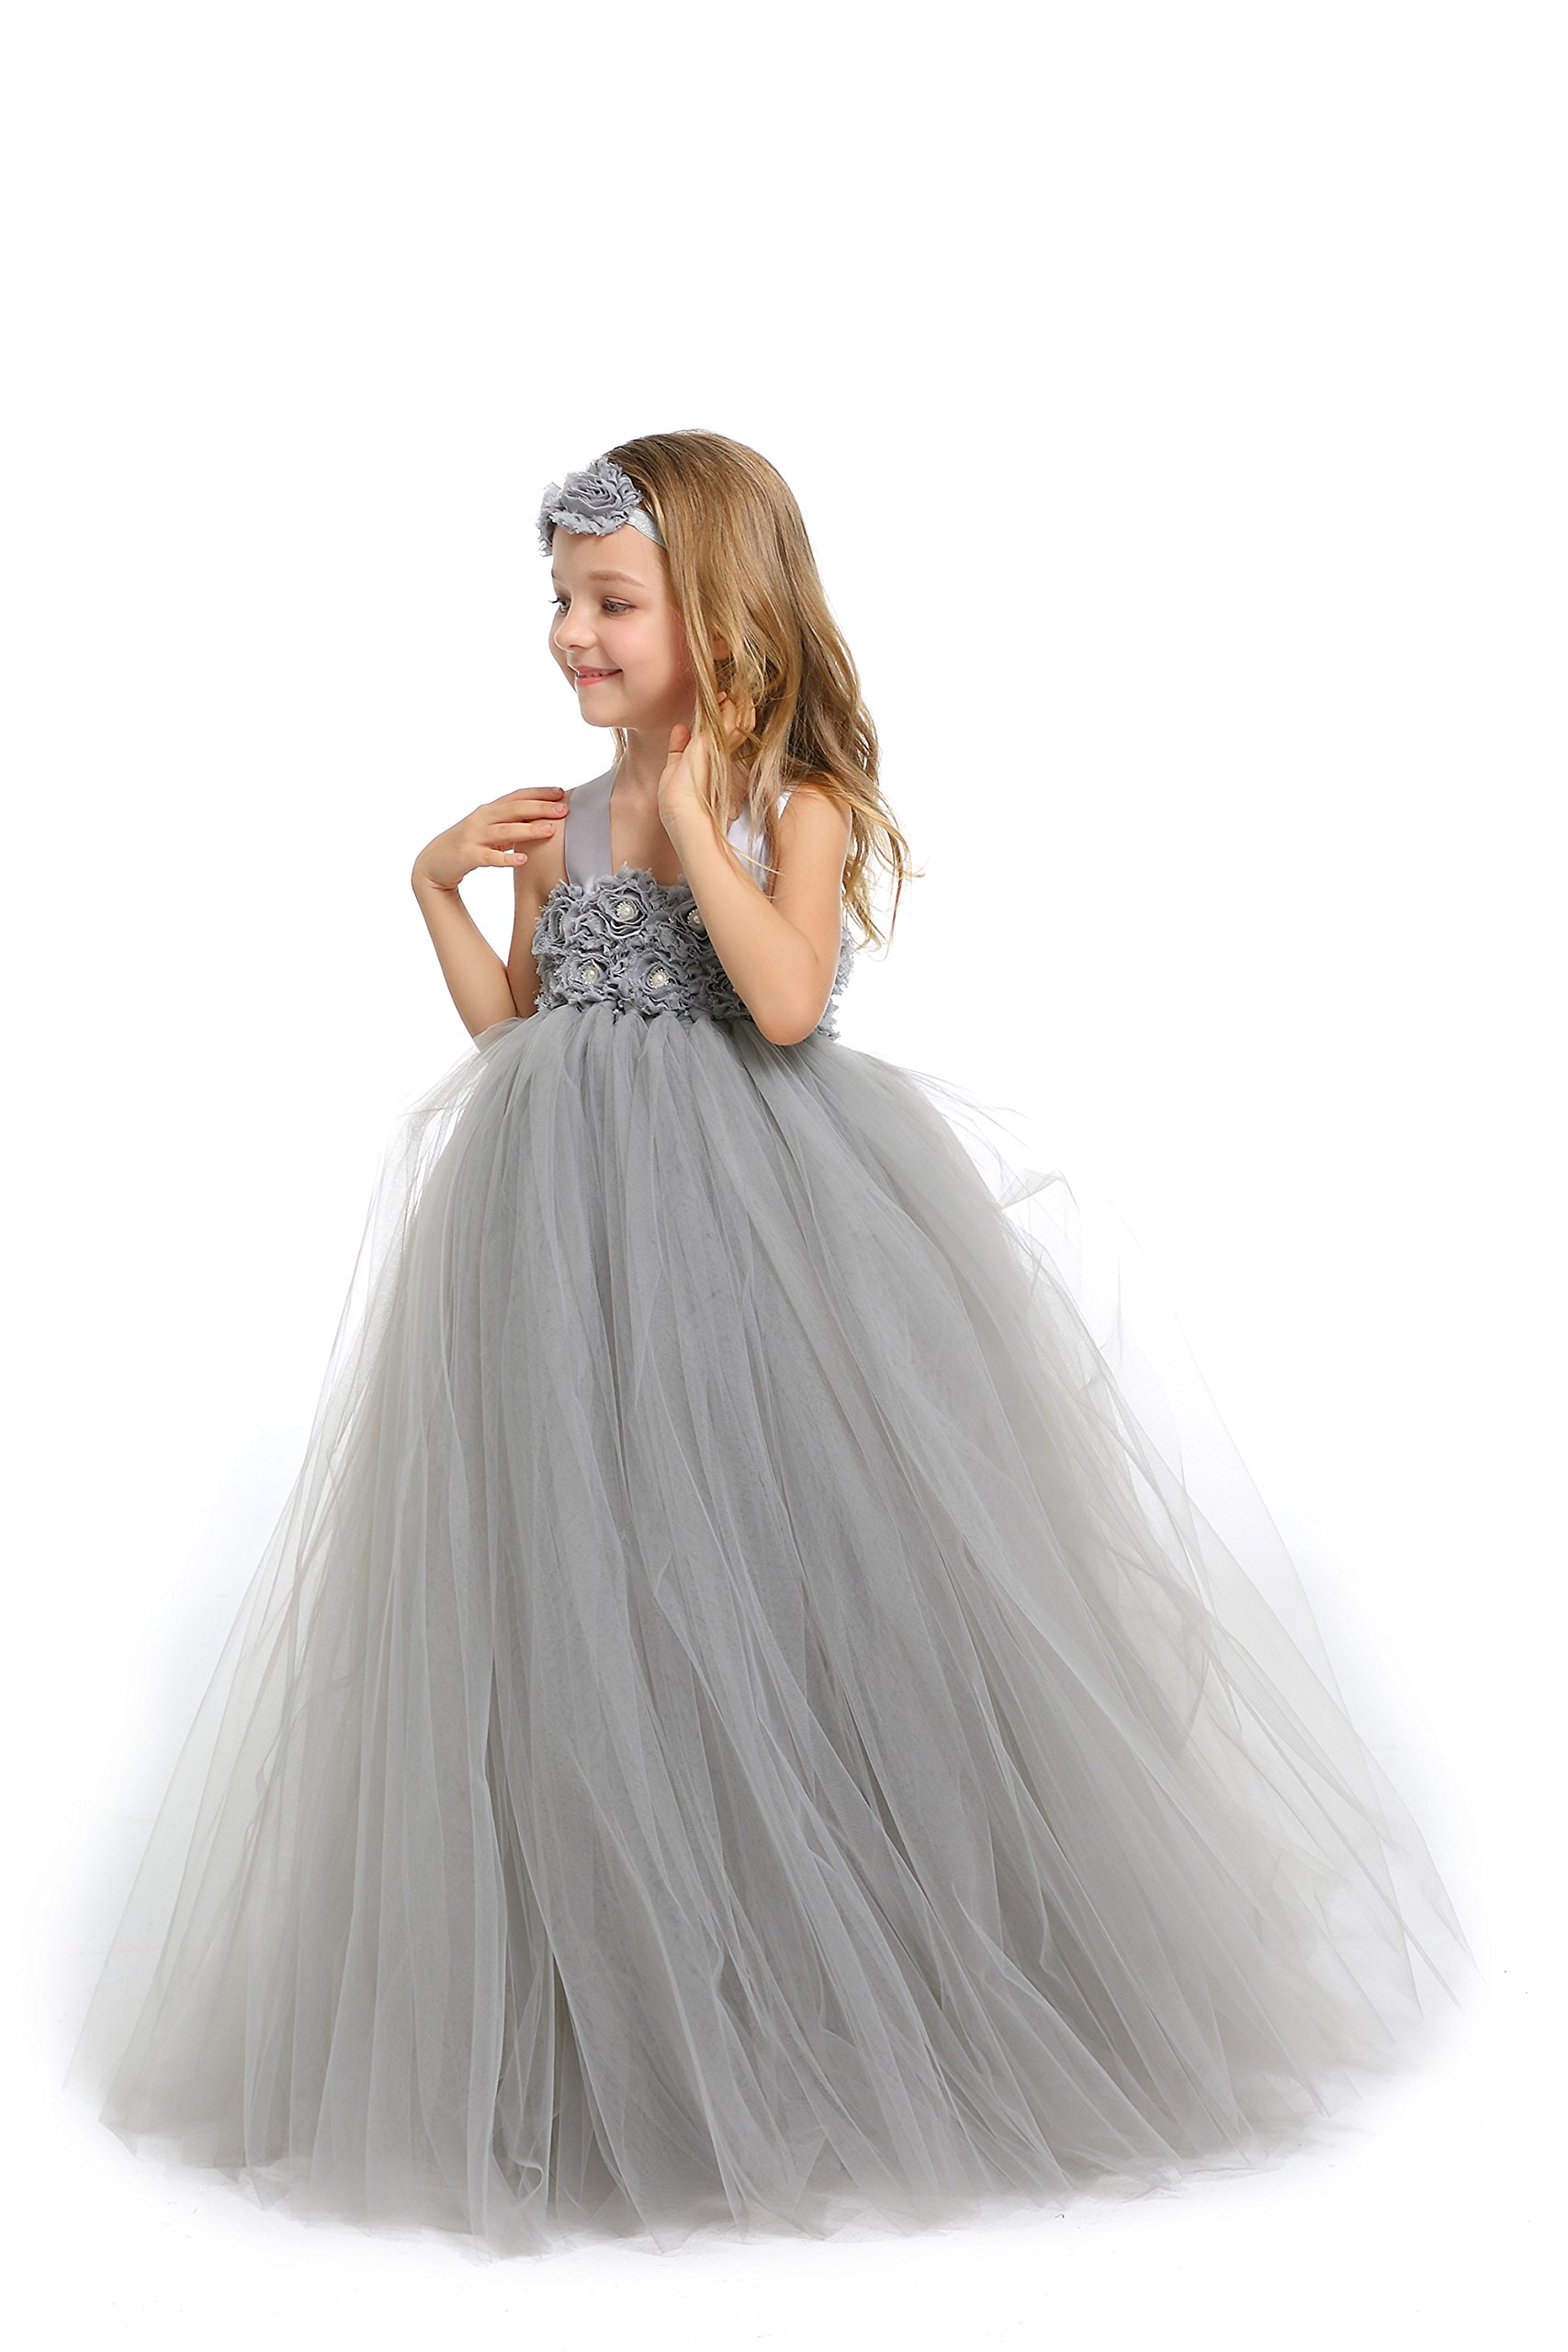 MALIBULICo Fluffy Flower Girl Tutu Dress with Matching Headband for Wedding and Birthday Party by MALIBULICo (Image #2)